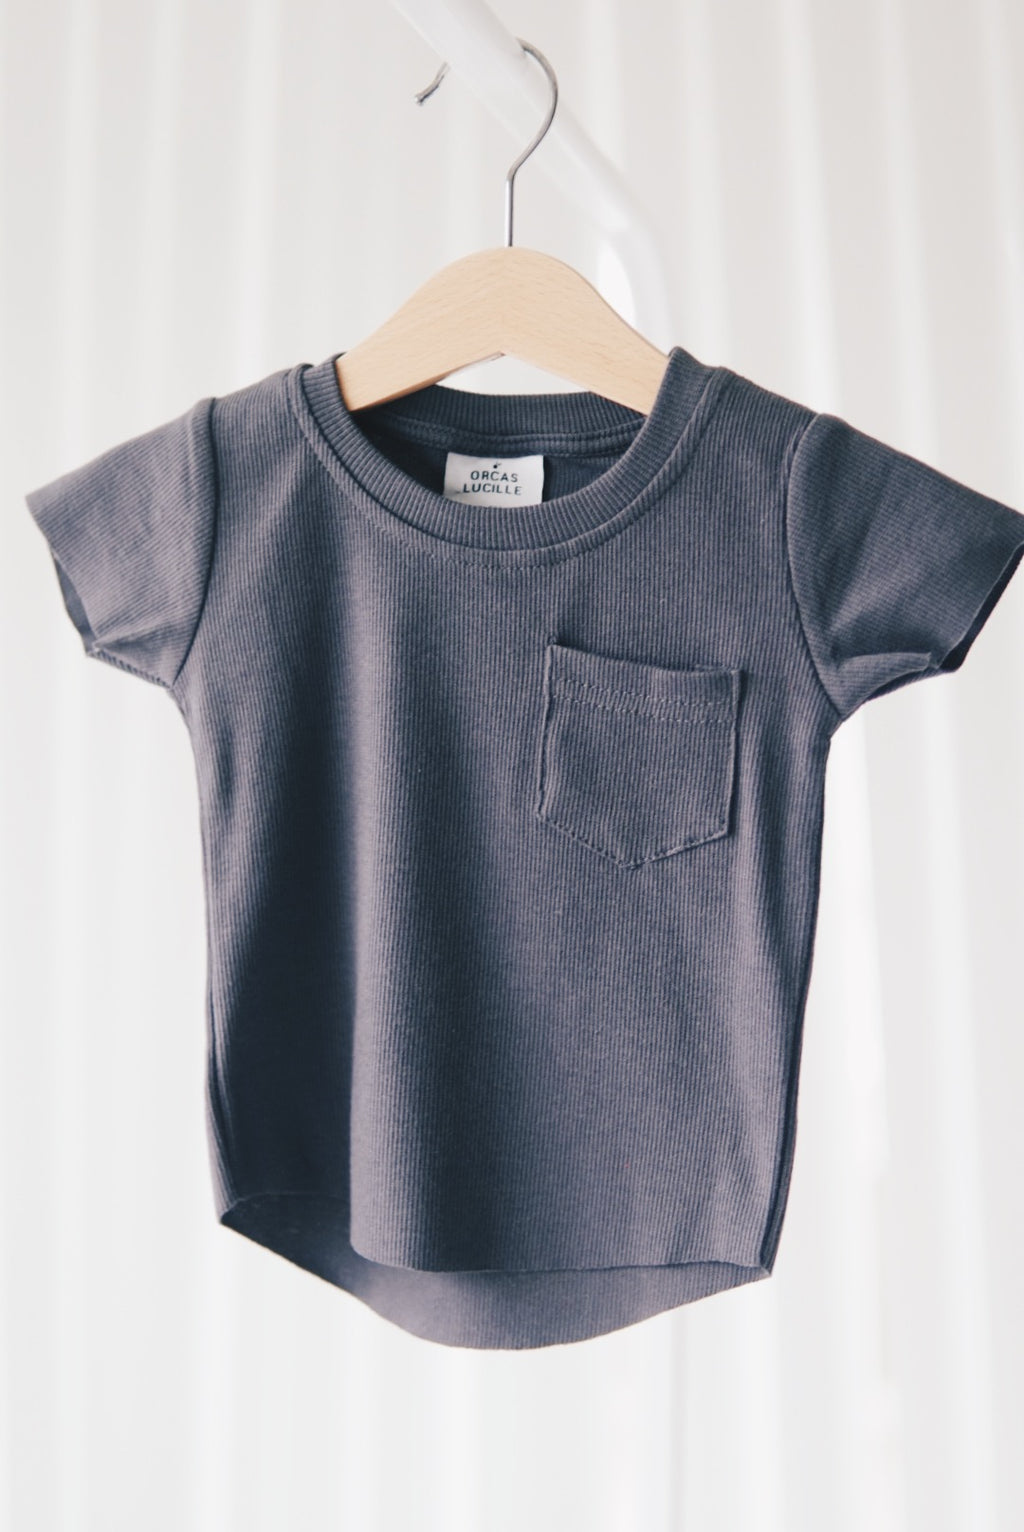 Ribbed Pocket Tee - Charcoal